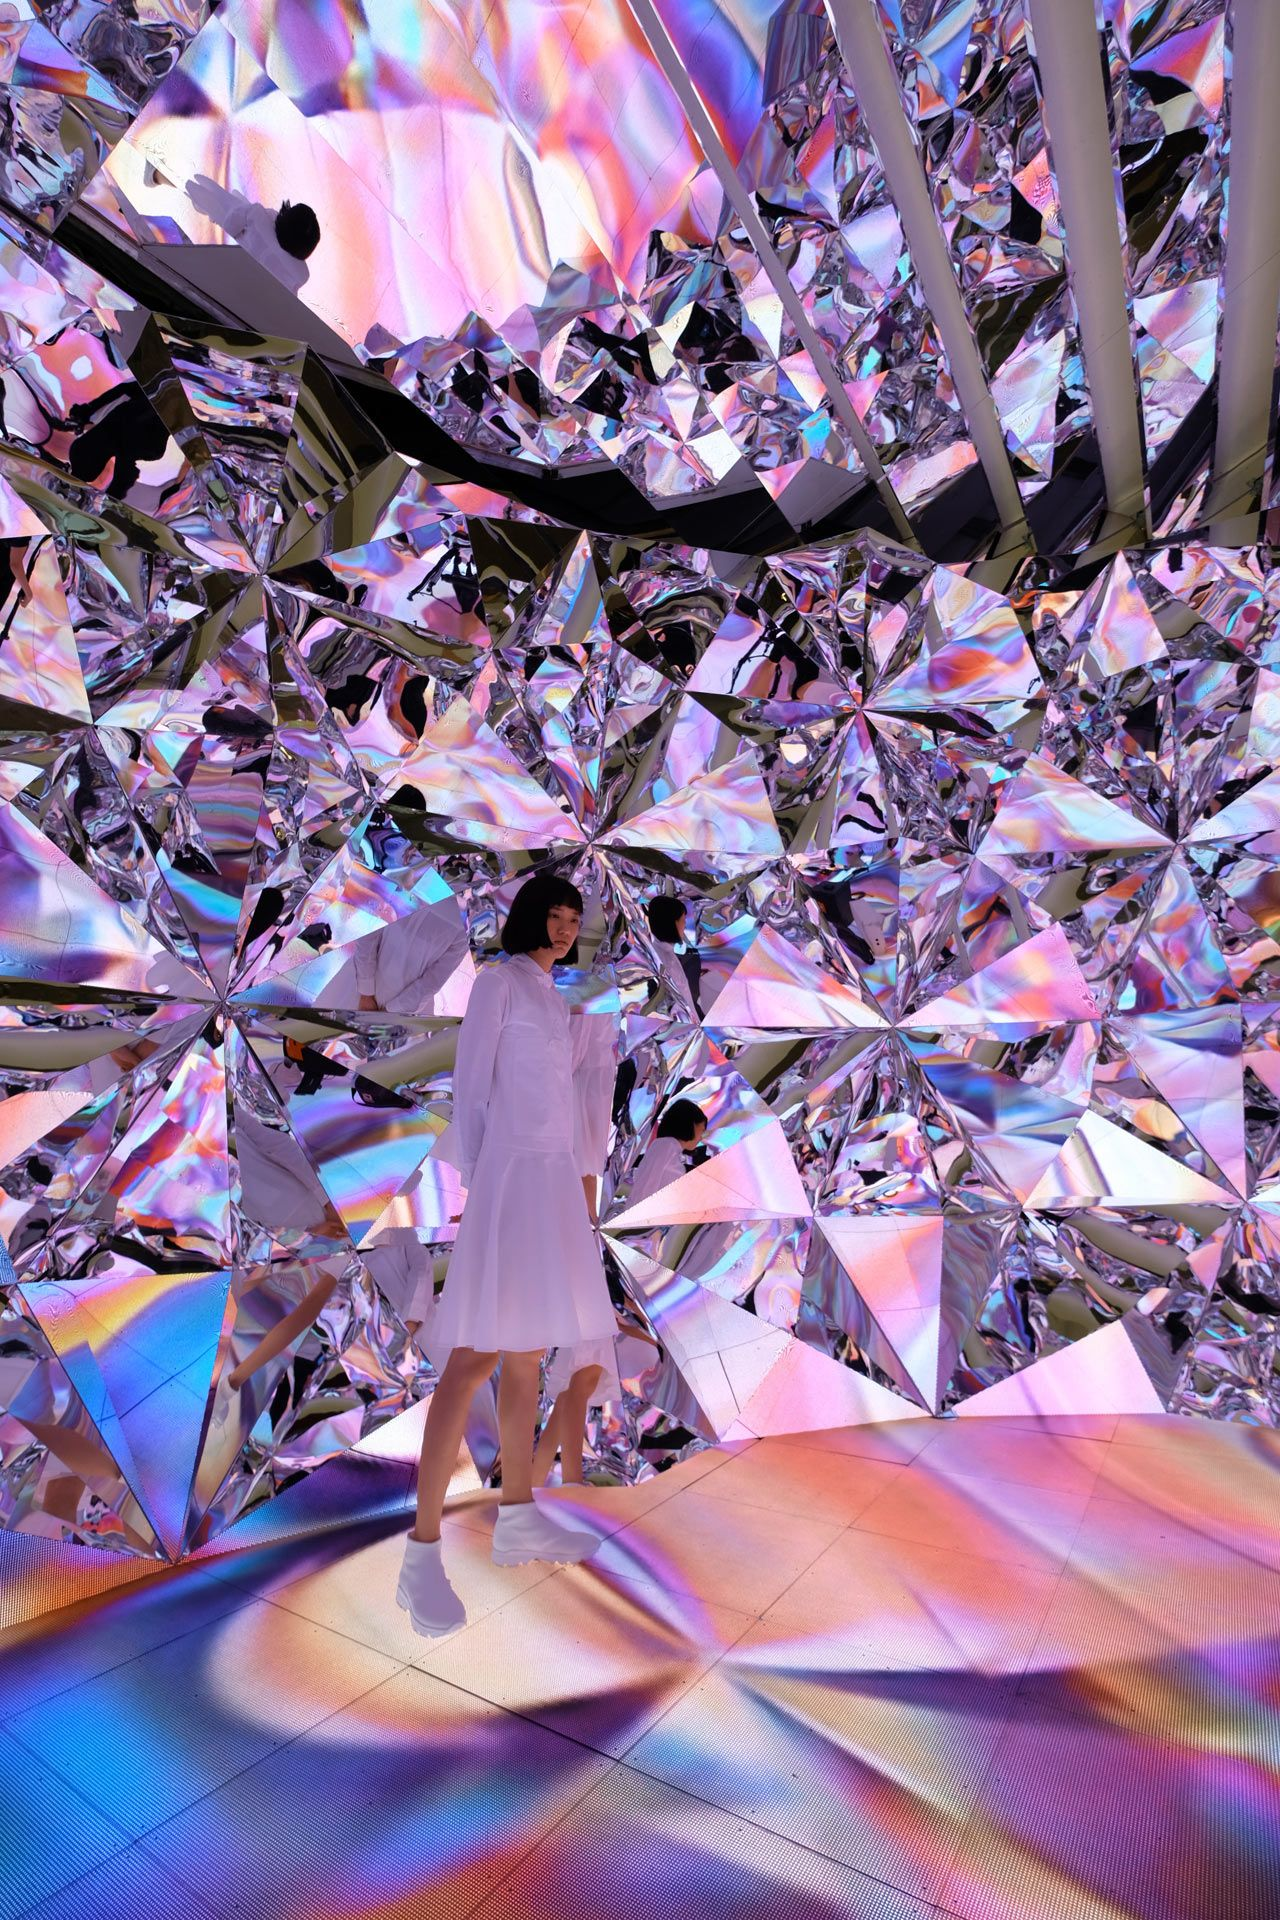 Prismverse: An Installation of Geometrical Tessellated Mirror Walls - Design Milk